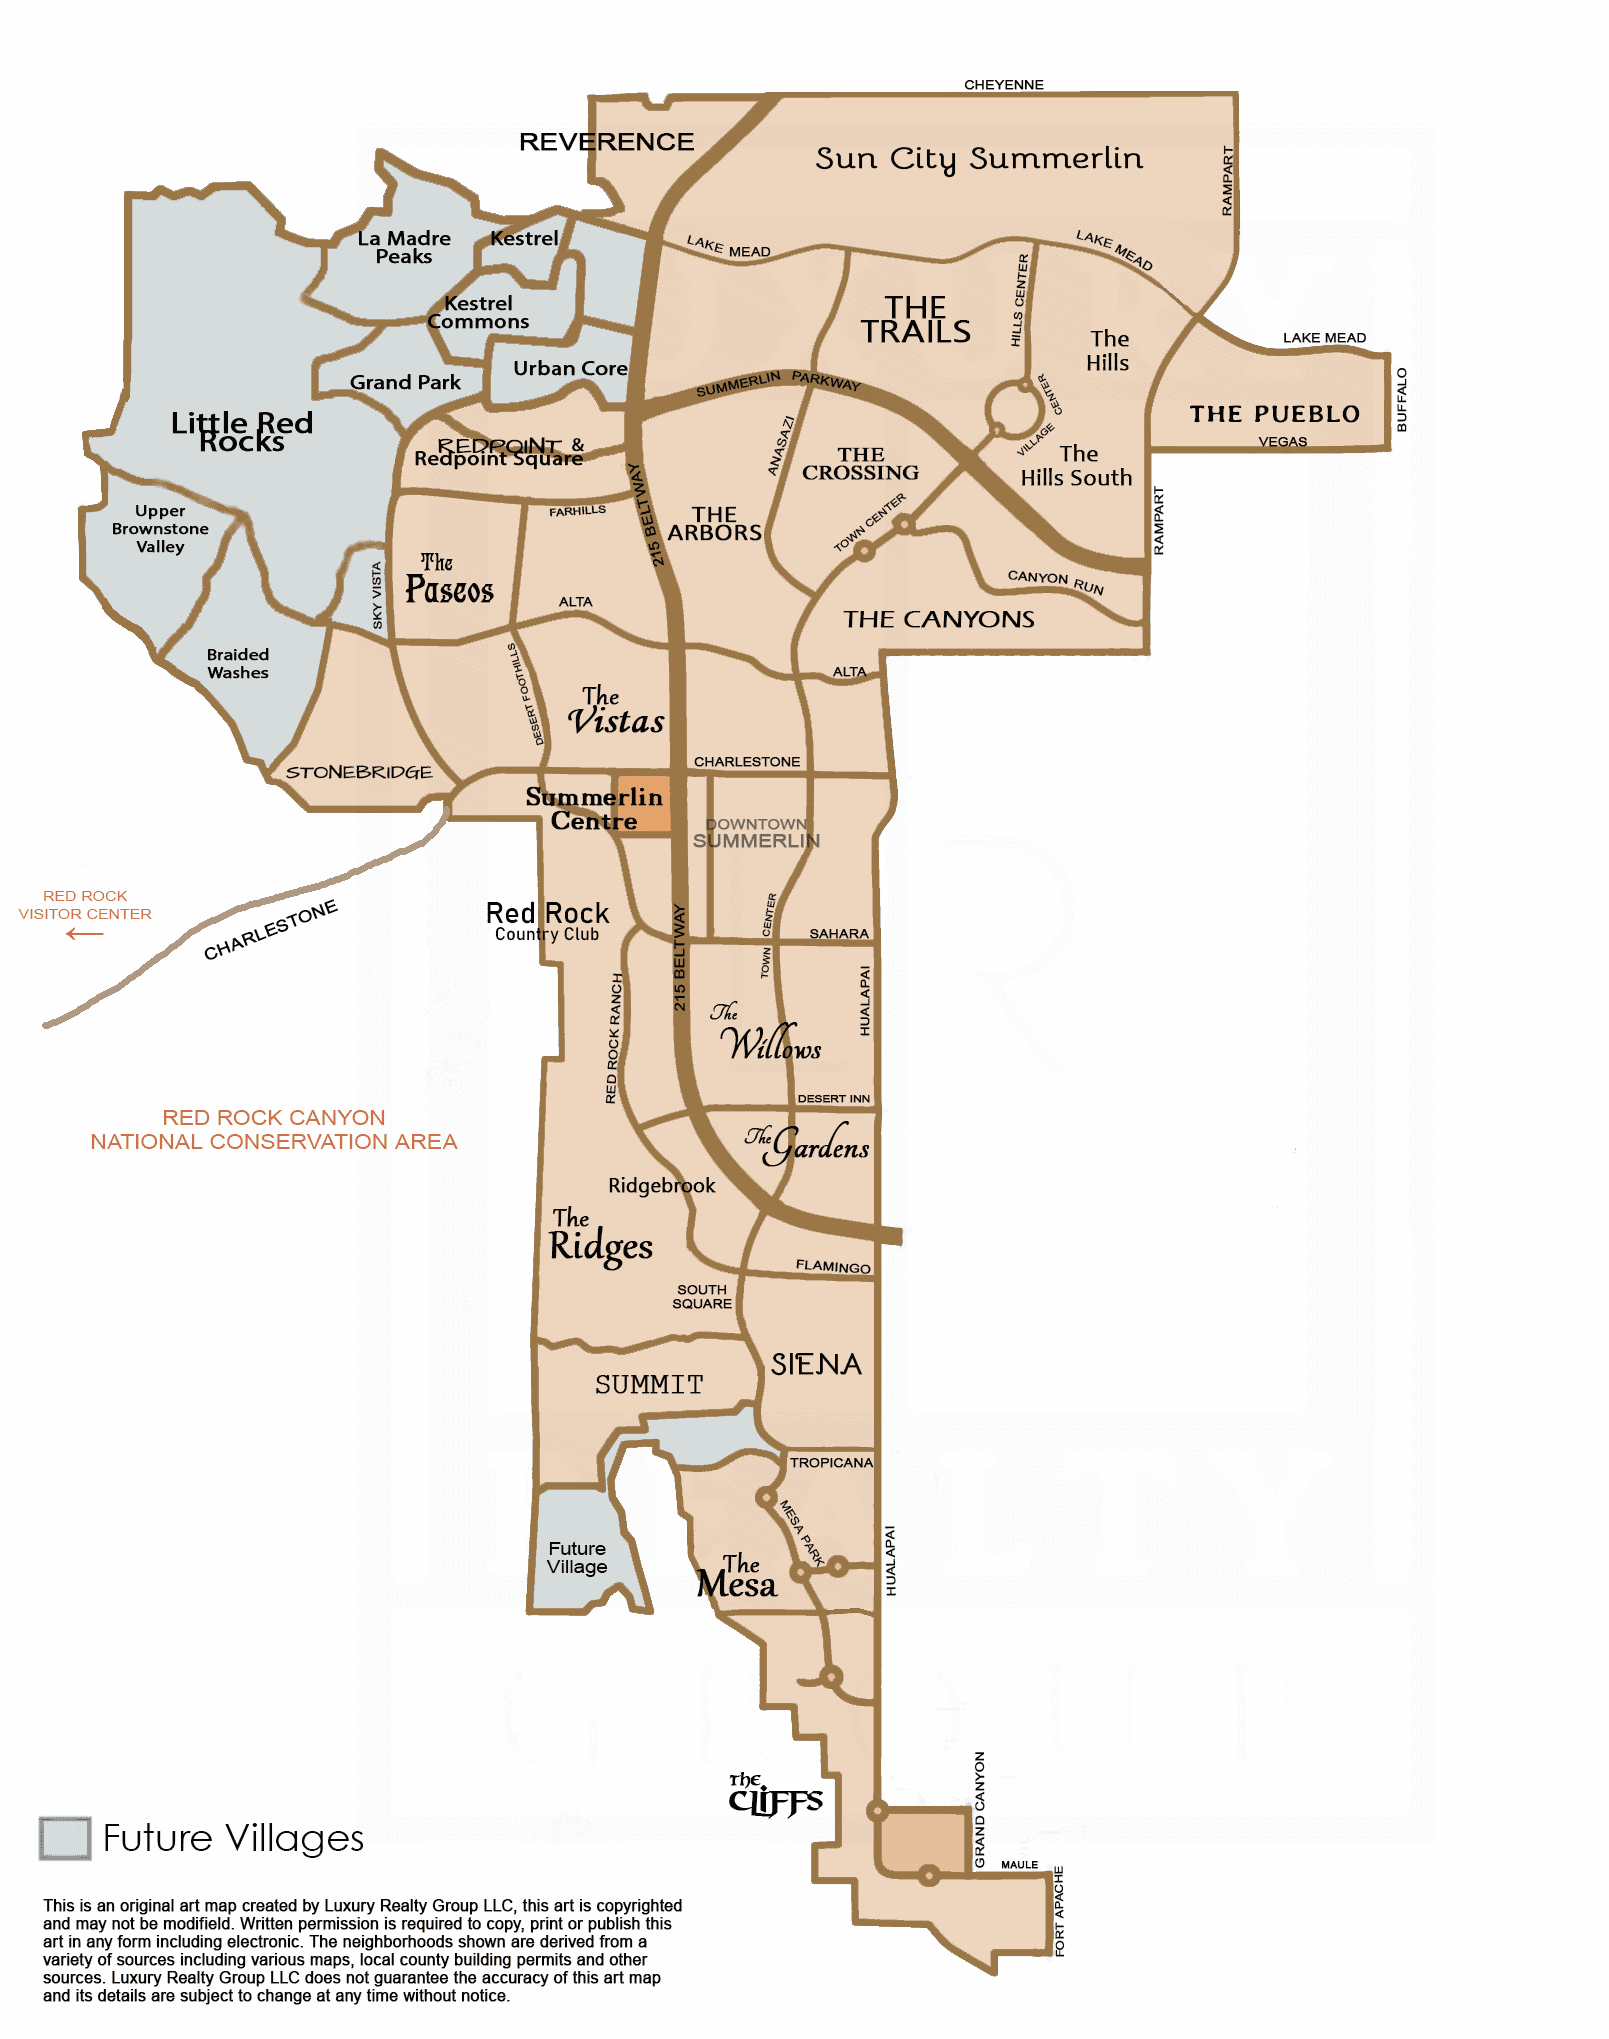 Summerlin Border Map by Luxury Realty Group LLC 2021.